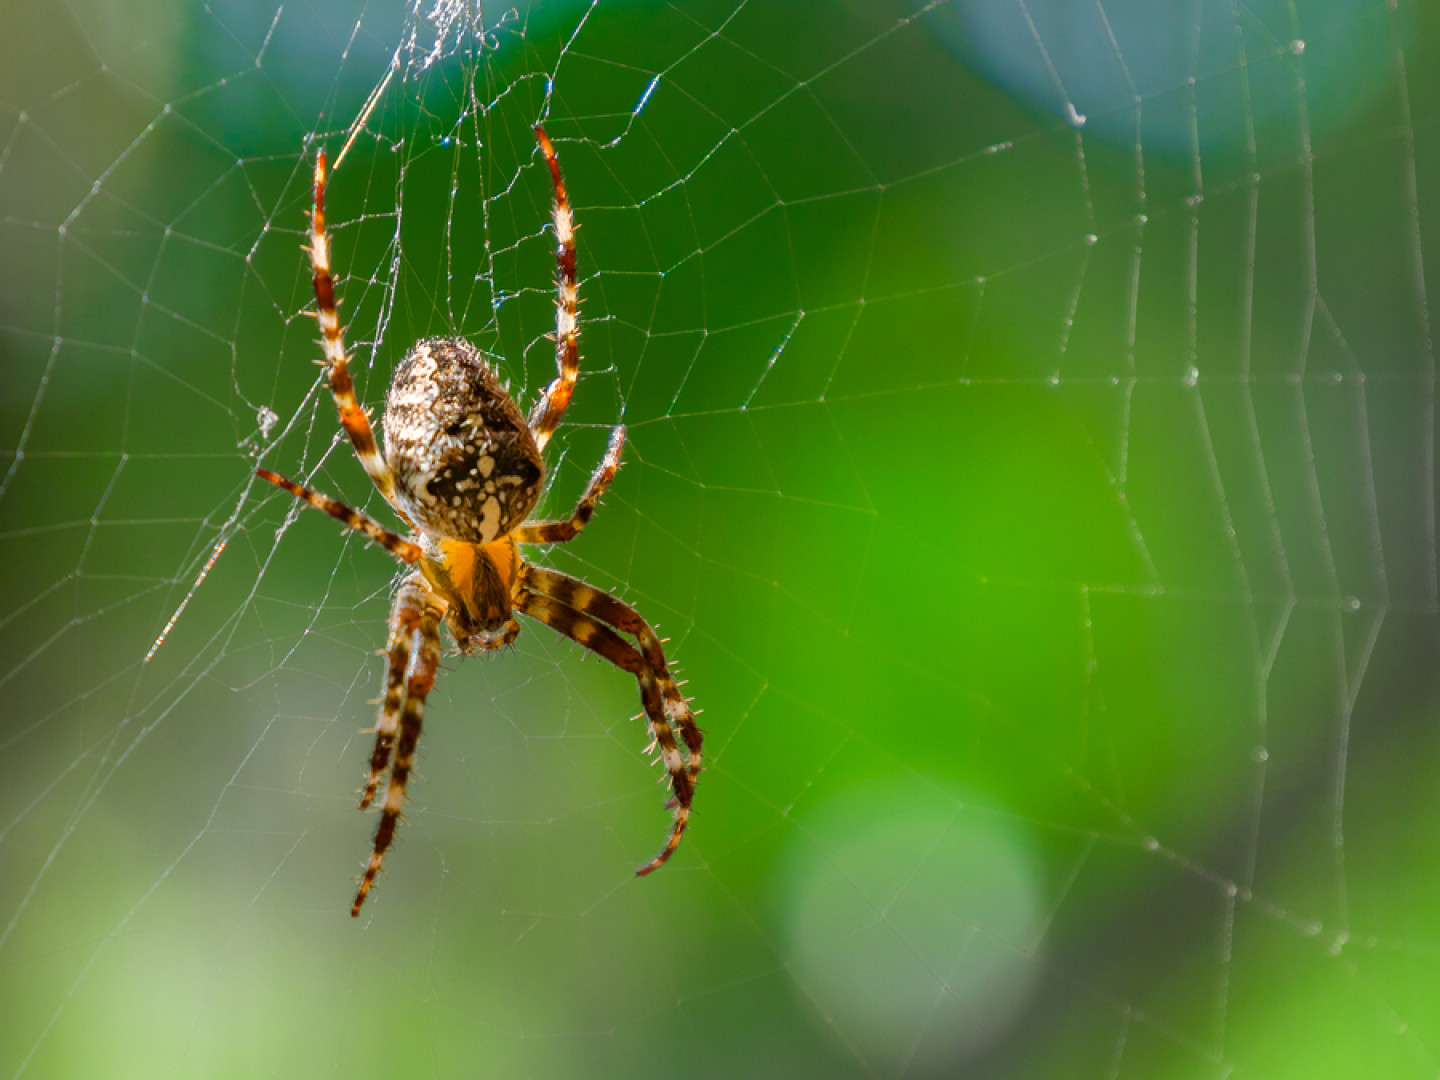 How to get rid of spiders in Fort Lauderdale, Wilton Manors & Pembroke Pines, FL